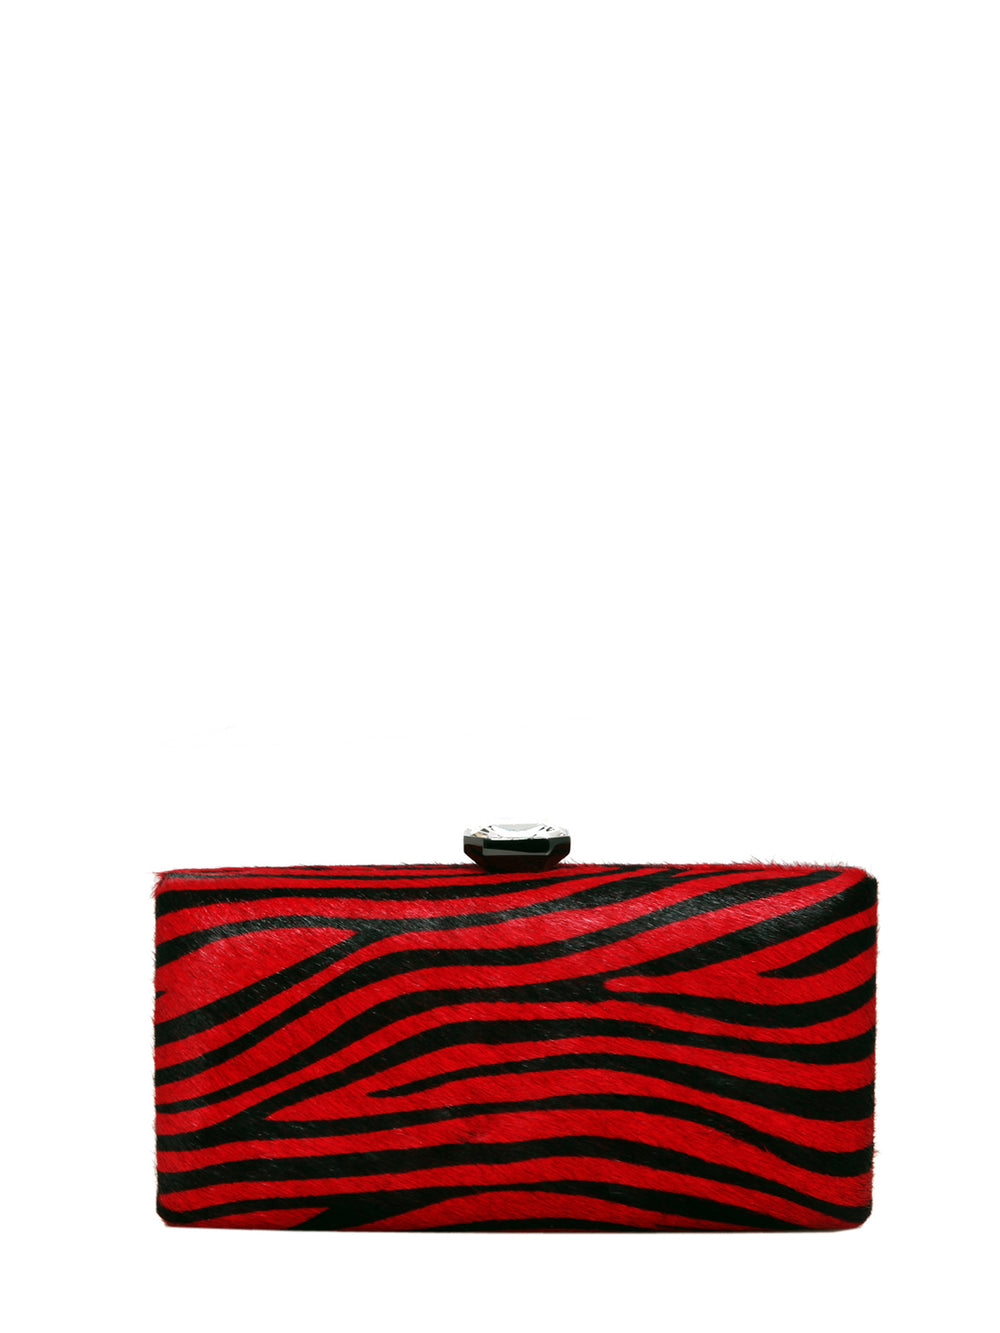 Black And Red Maryanne Clutch, SAFIRA - elilhaam.com